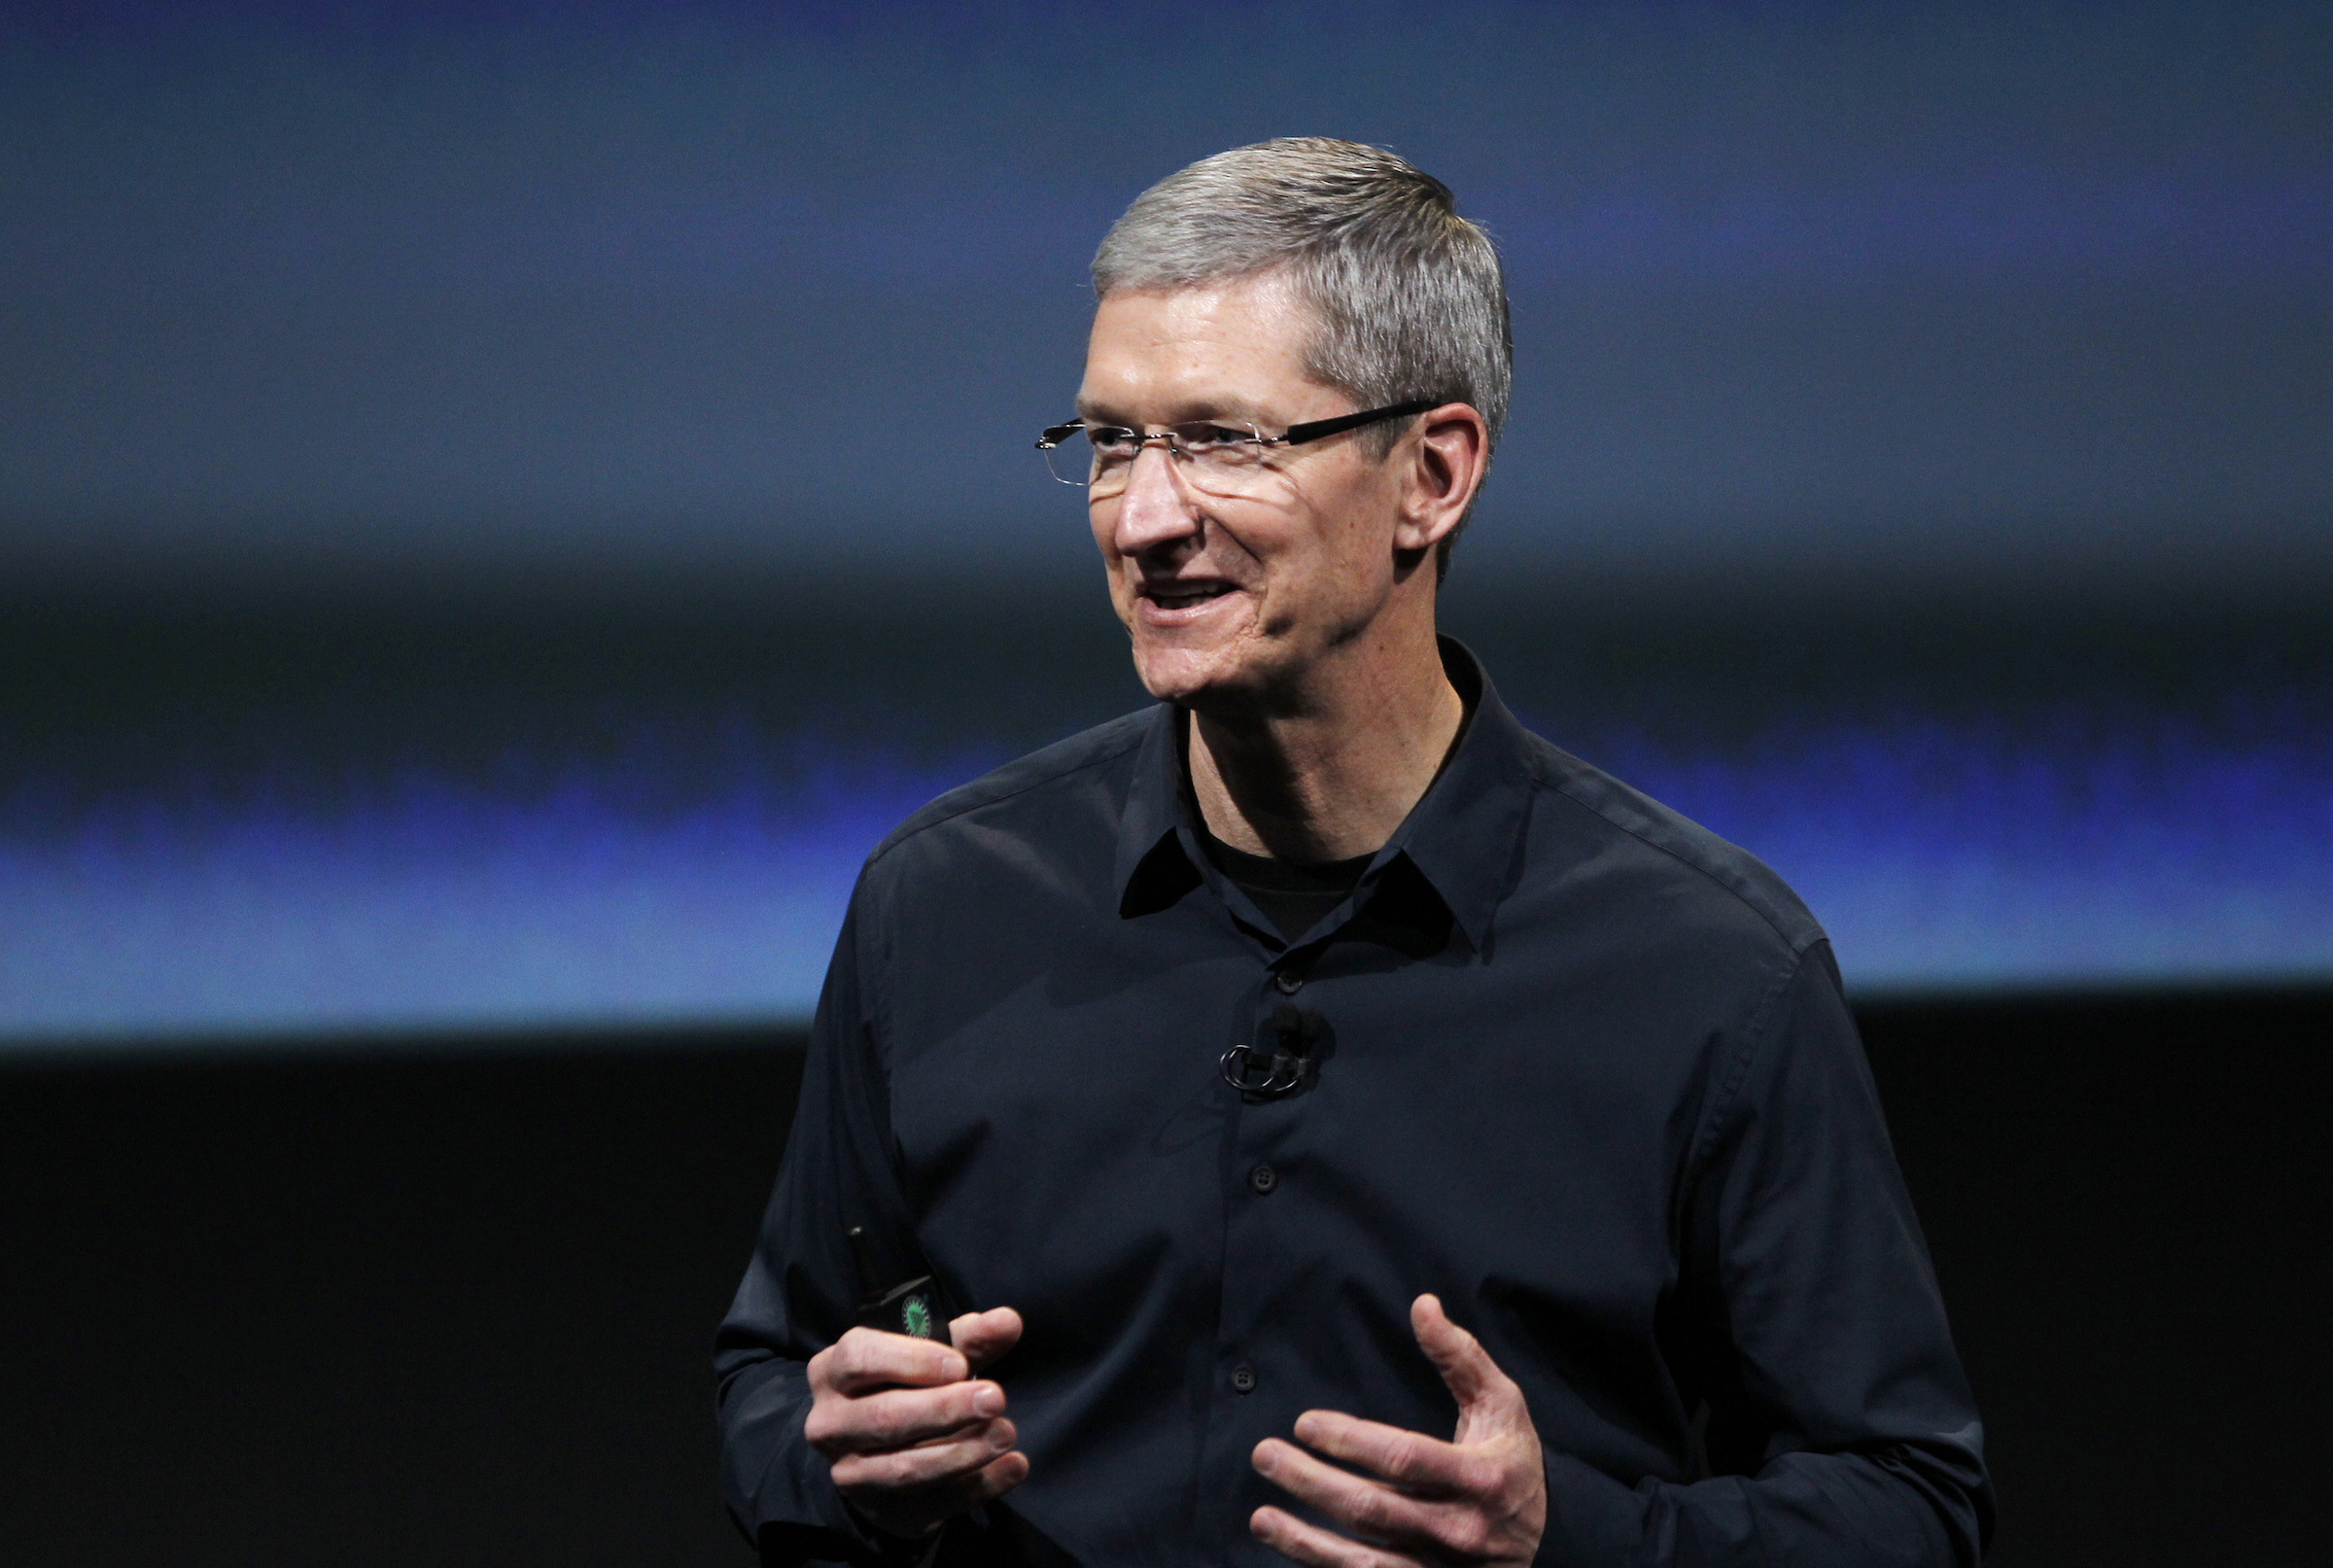 Apple CEO Tim Cook speaks about the iPhone 4S at Apple headquarters in Cupertino, California October 4, 2011.